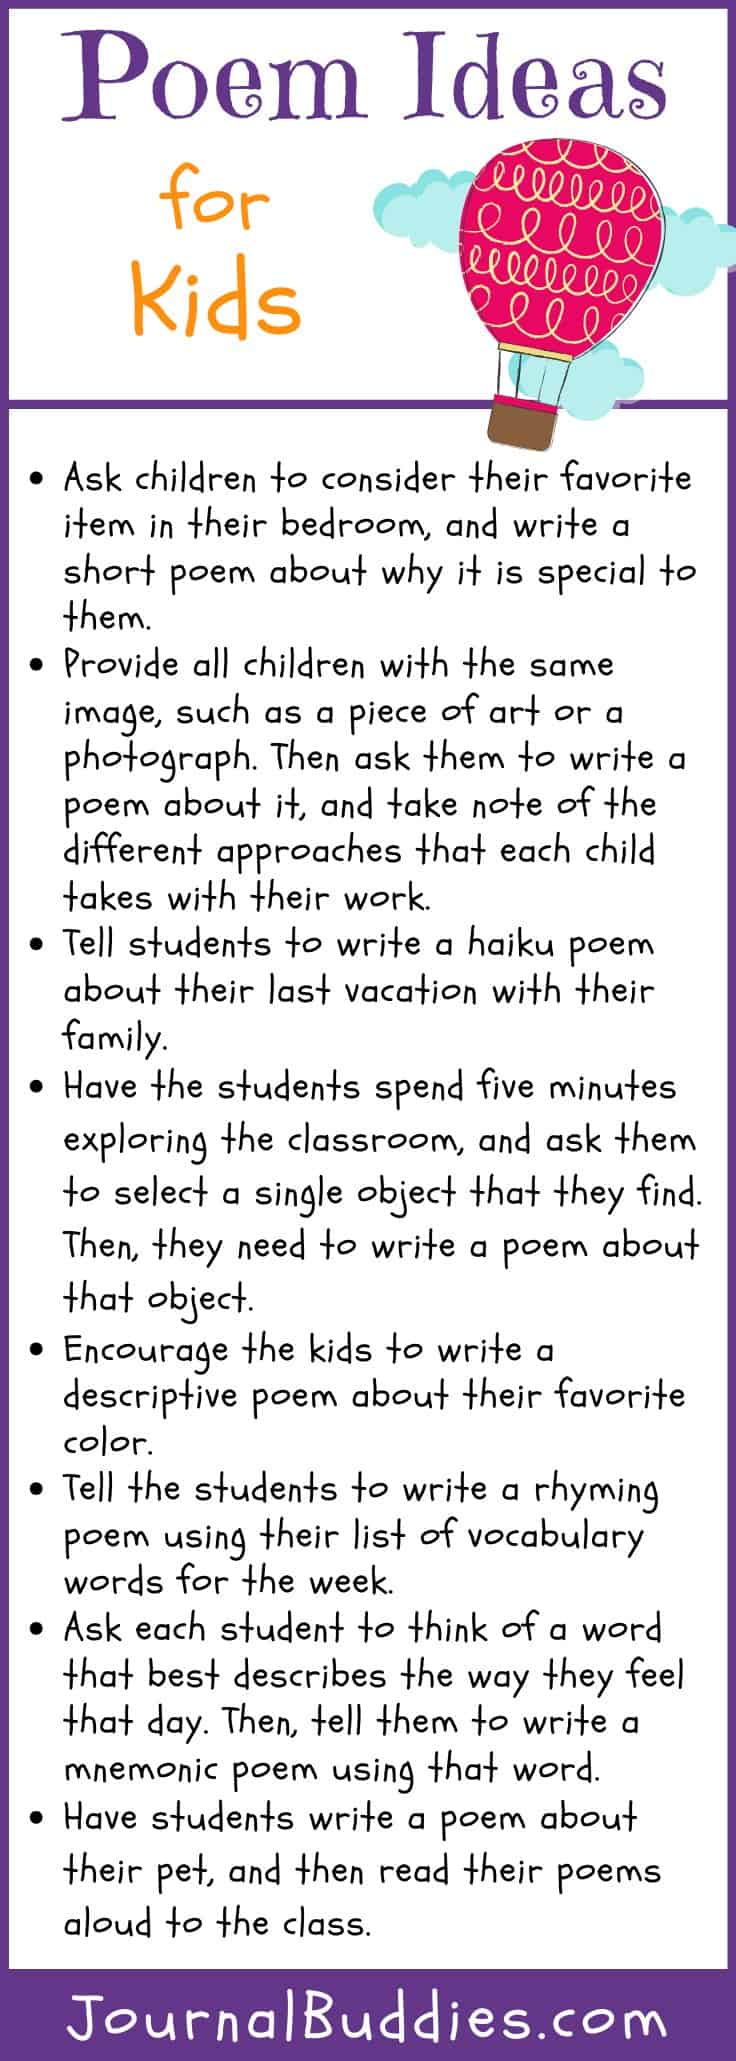 Poem Ideas For Kids Journalbuddies Com Before doing any writing, you need to decide what kind of poem to write. poem ideas for kids journalbuddies com